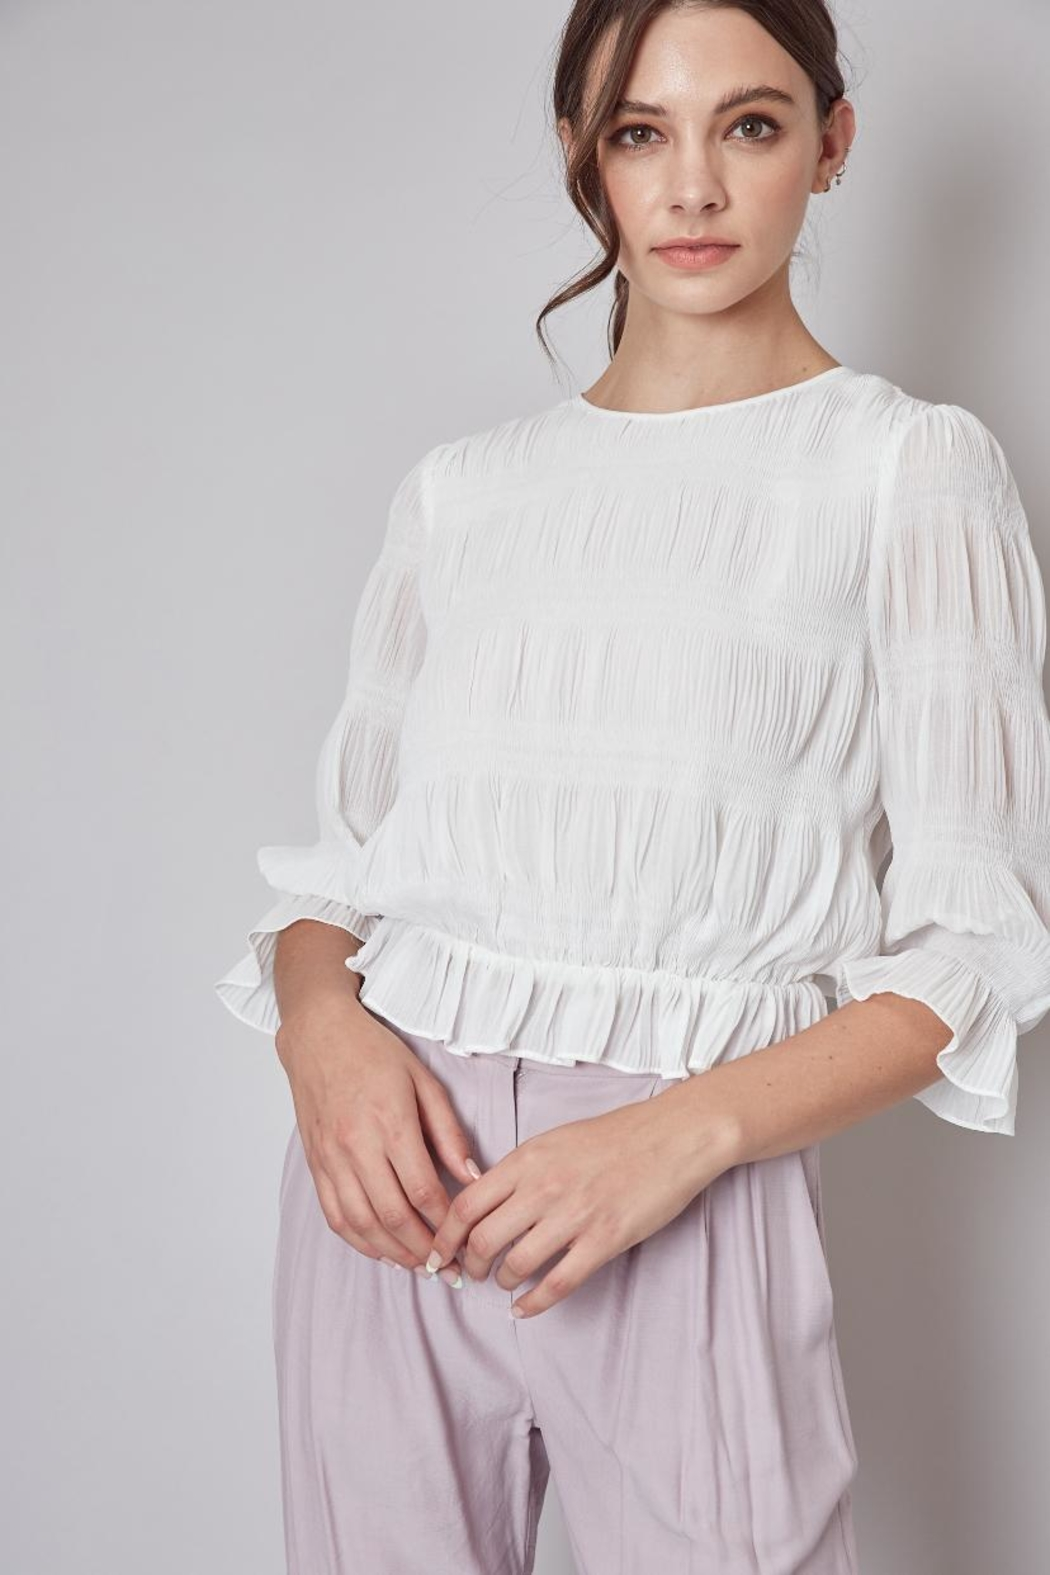 Do & Be Off-White Pleated Top - Main Image